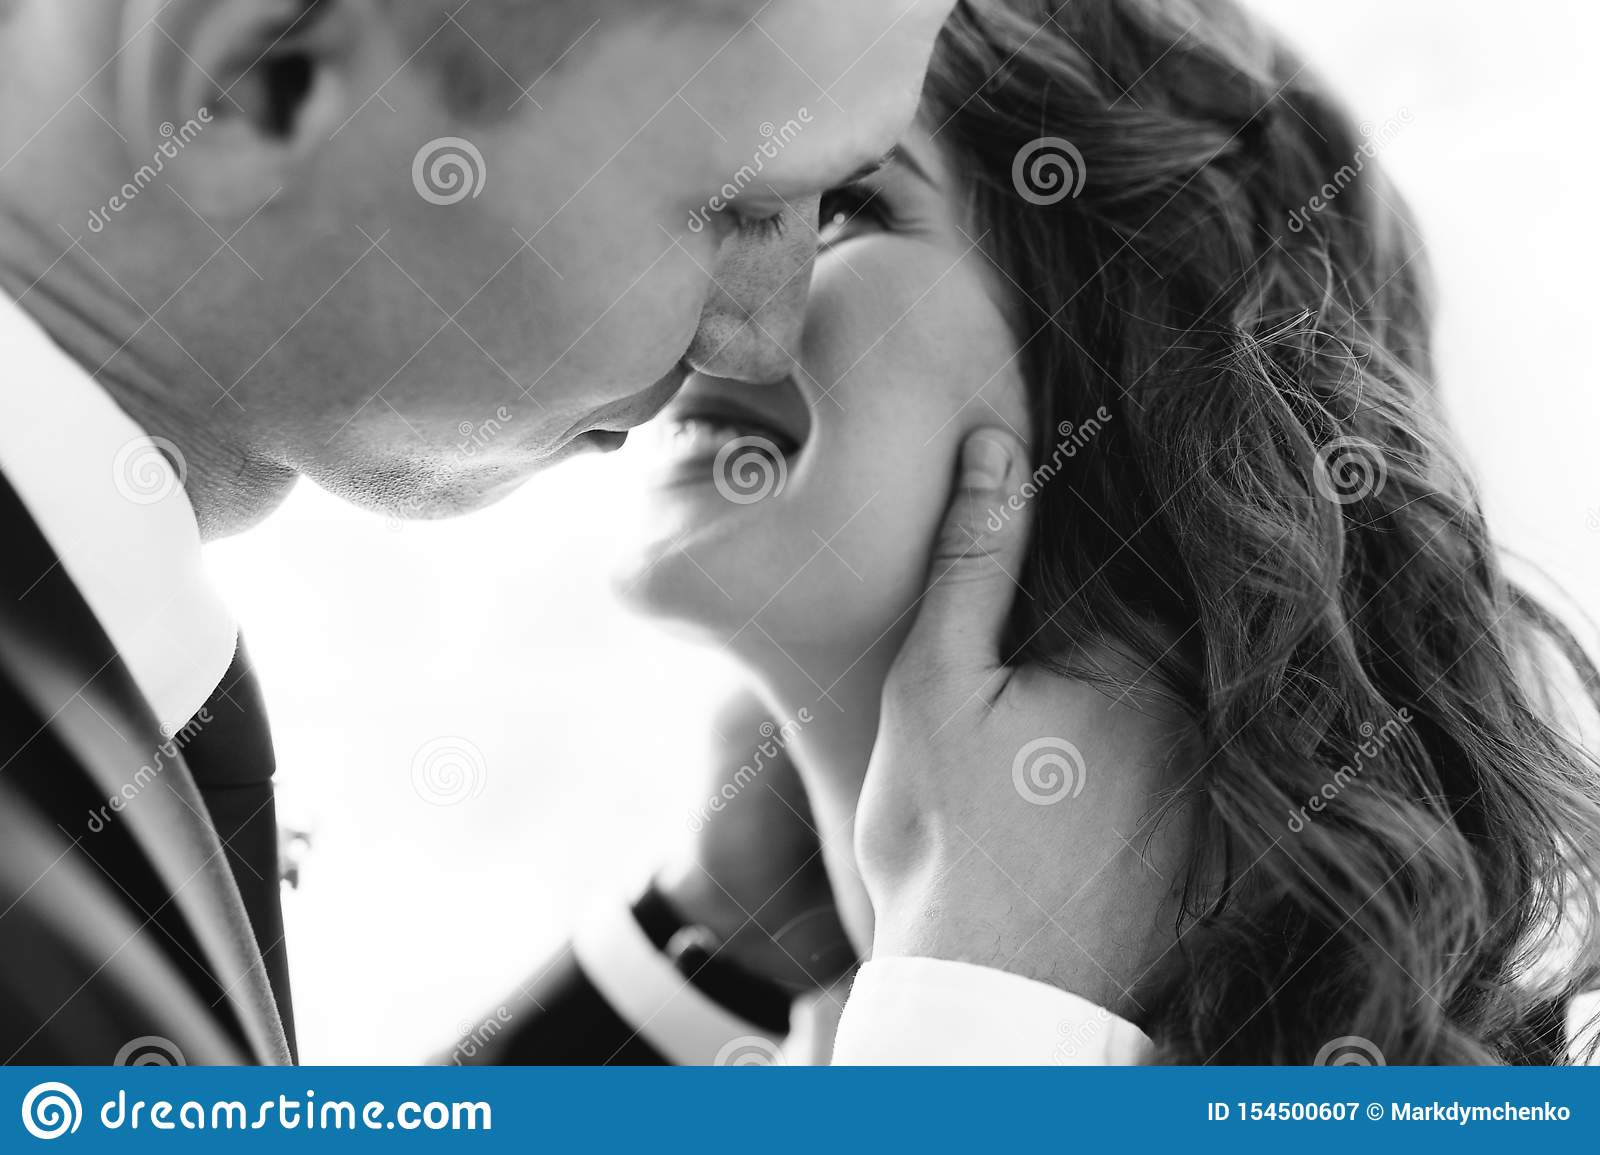 Beautiful Bride And Groom Posing In Studio First Kiss Wedding Photo Shoot Stock Image Image Of Background Isolated 154500607